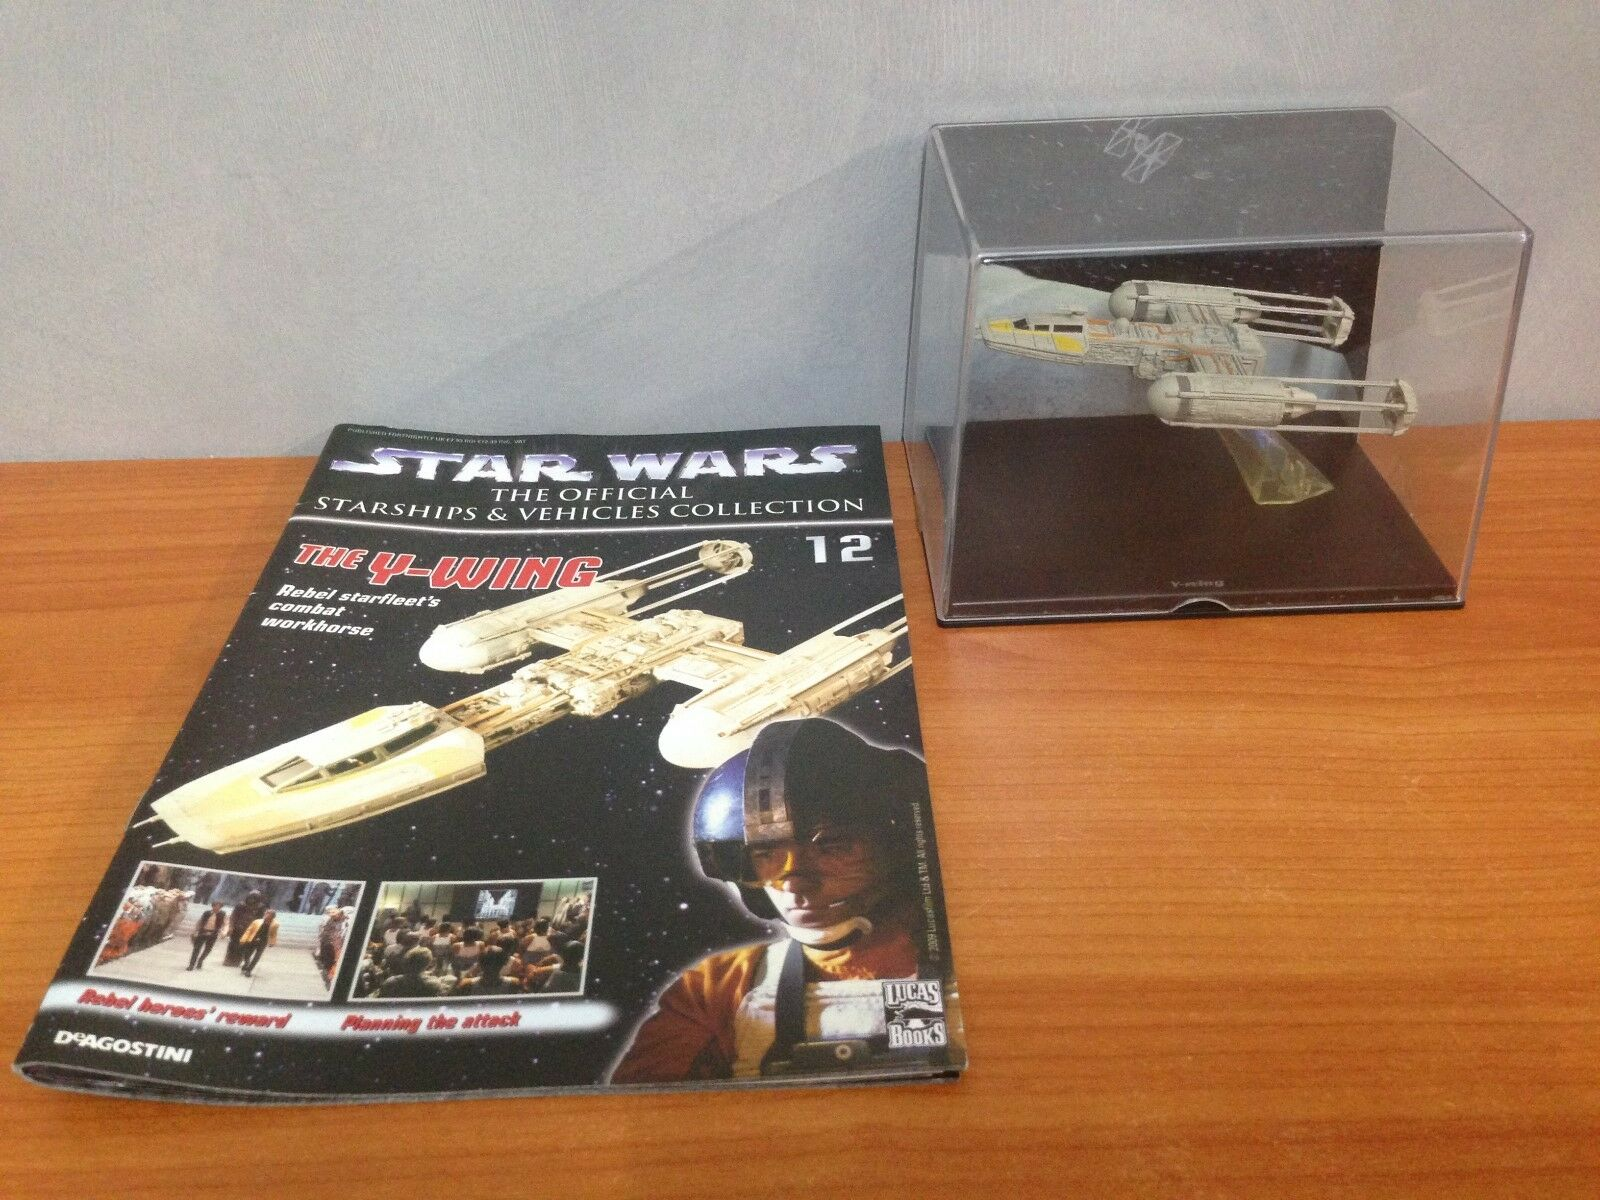 Star Wars Official Starships & Vehicles Coll No 12 - The Y-Wing